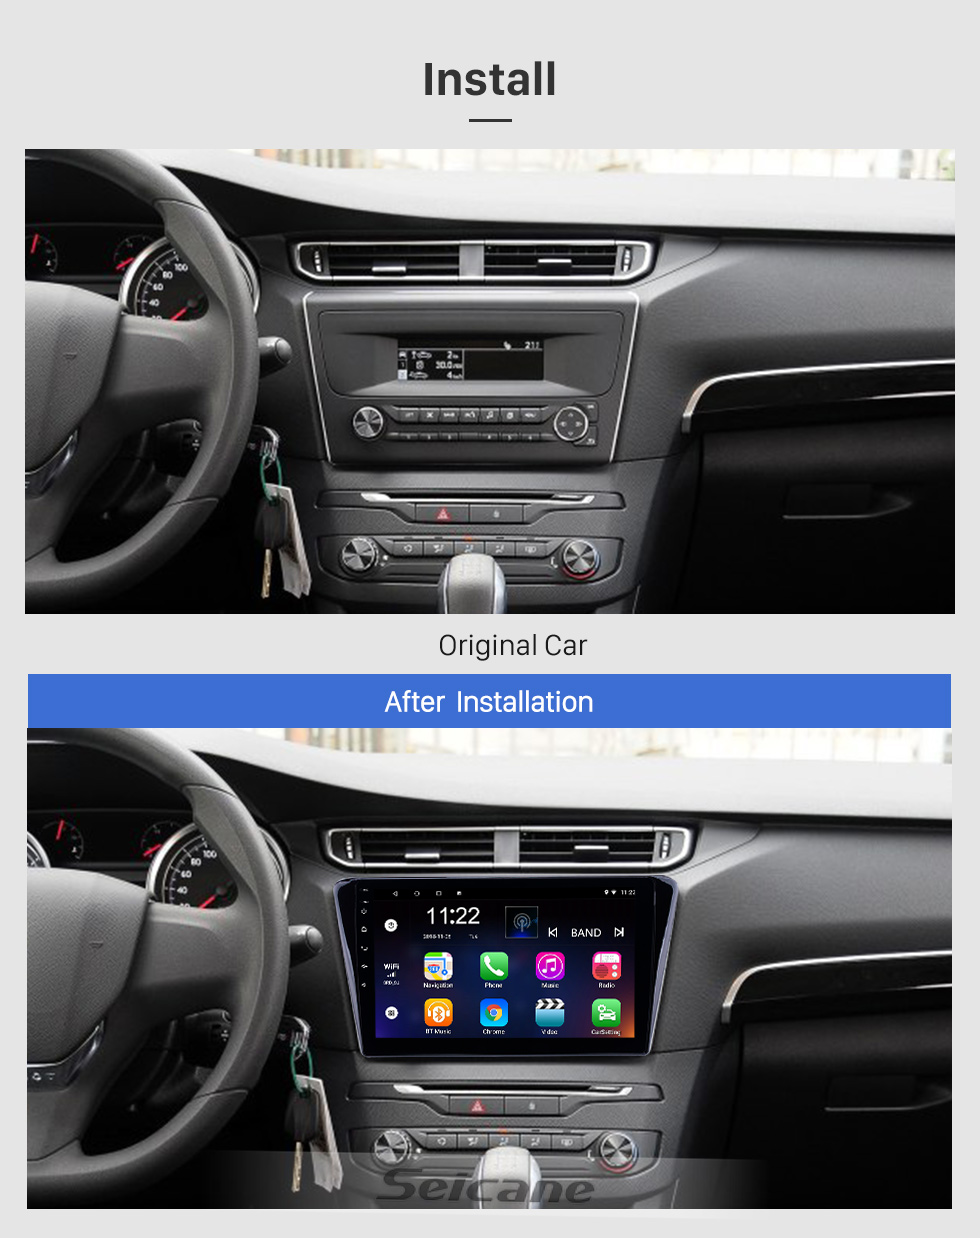 Seicane 2014 Peugeot 408 Touch Screen Android 8.1 10,1-Zoll-Kopfeinheit Bluetooth-Stereo mit USB AUX WIFI-Unterstützung DAB + OBD2 DVR